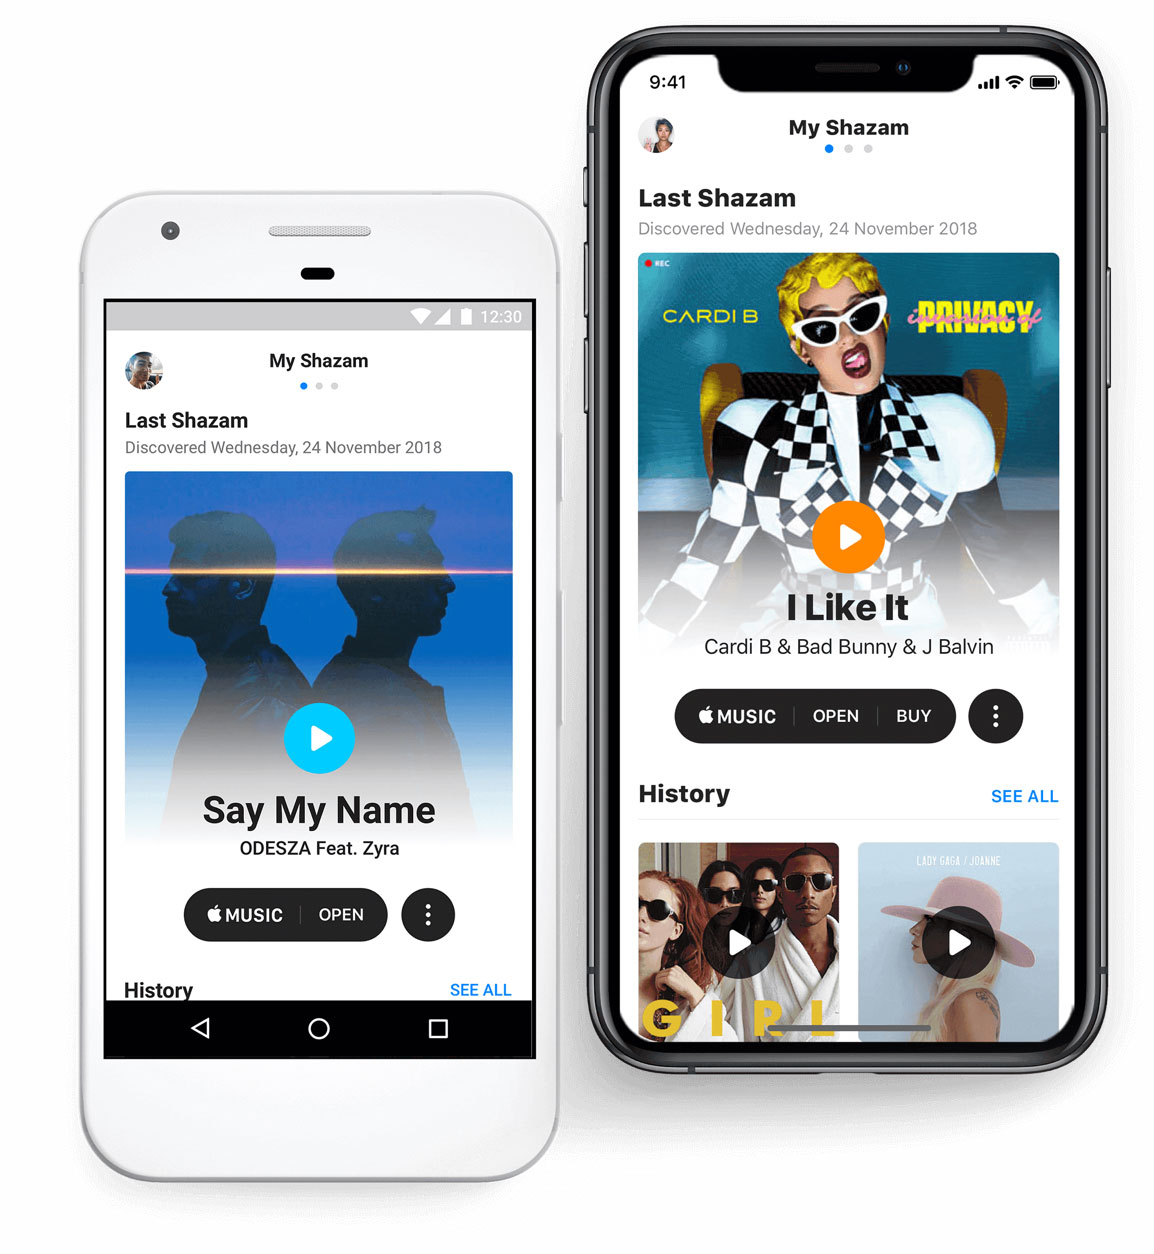 My Shazam on various devices